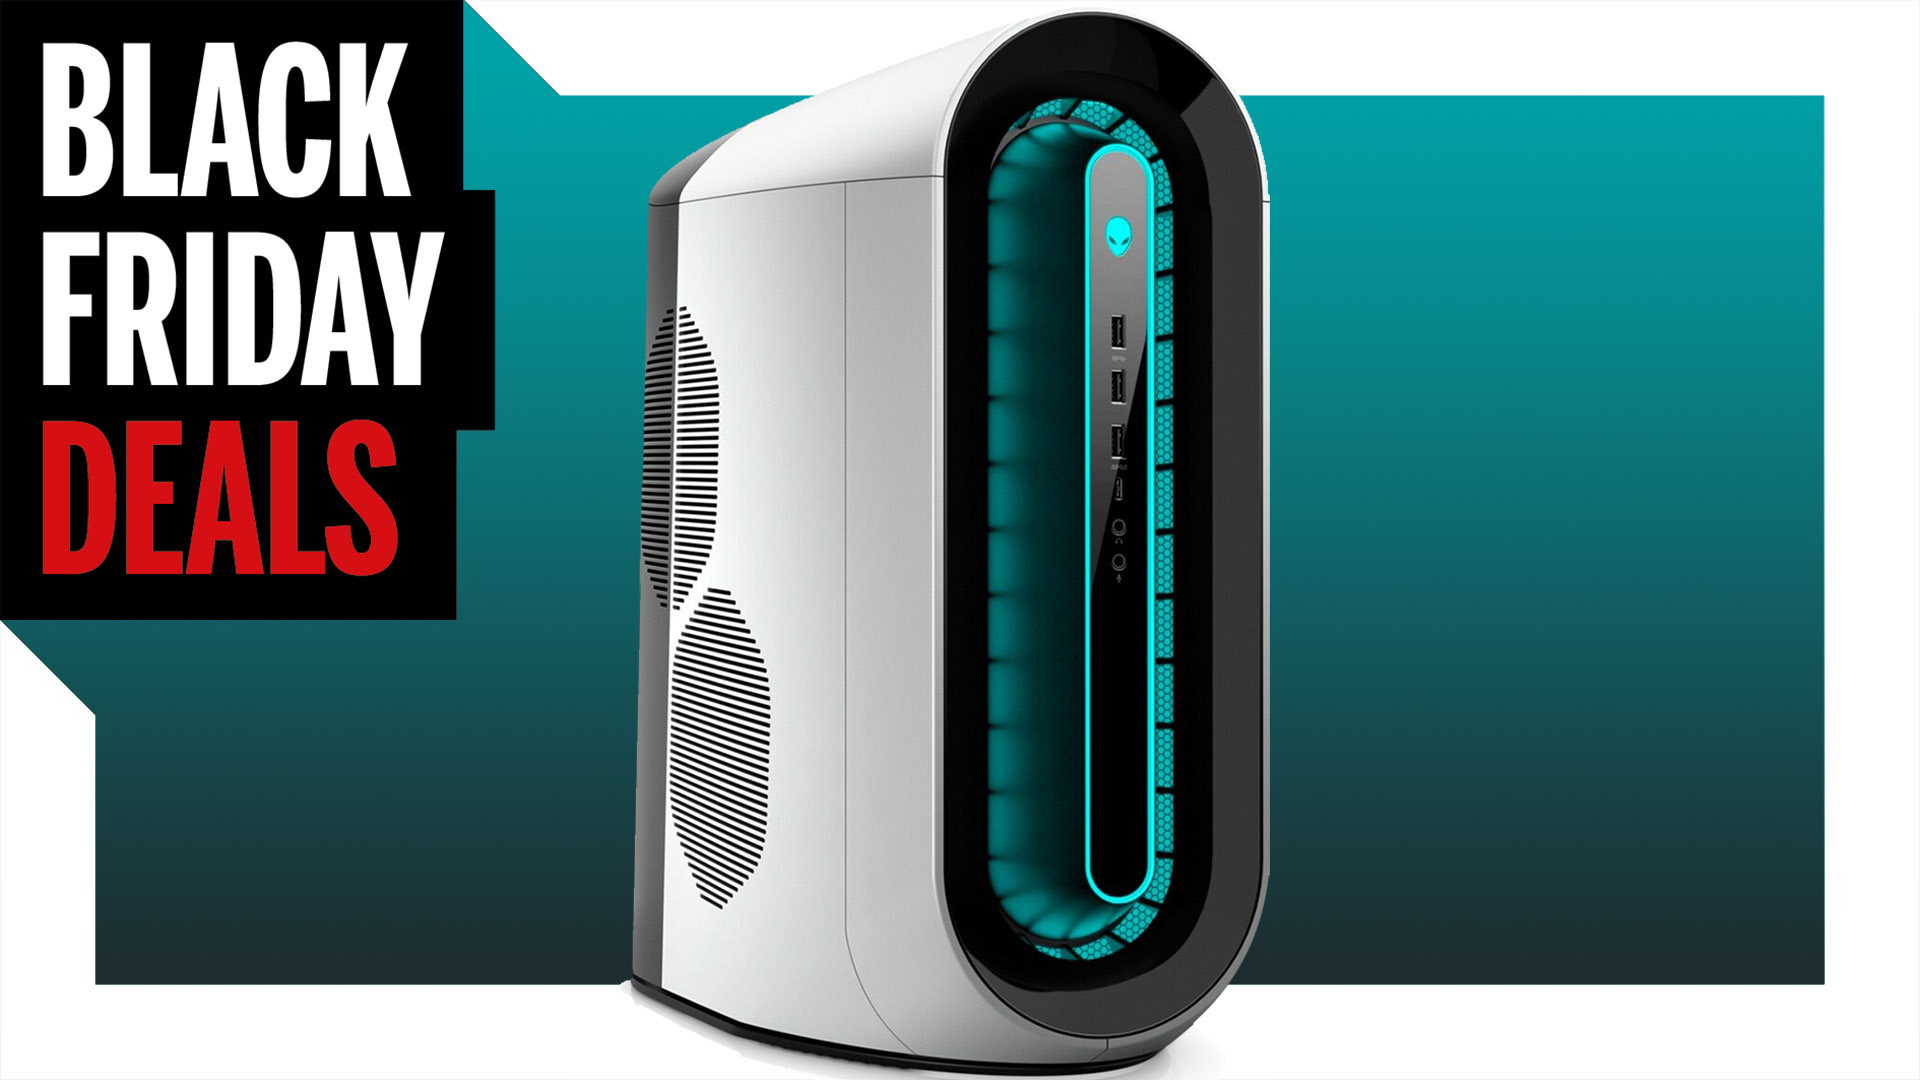 Alienware's entry-level Aurora R11 gaming PC is just $843 today